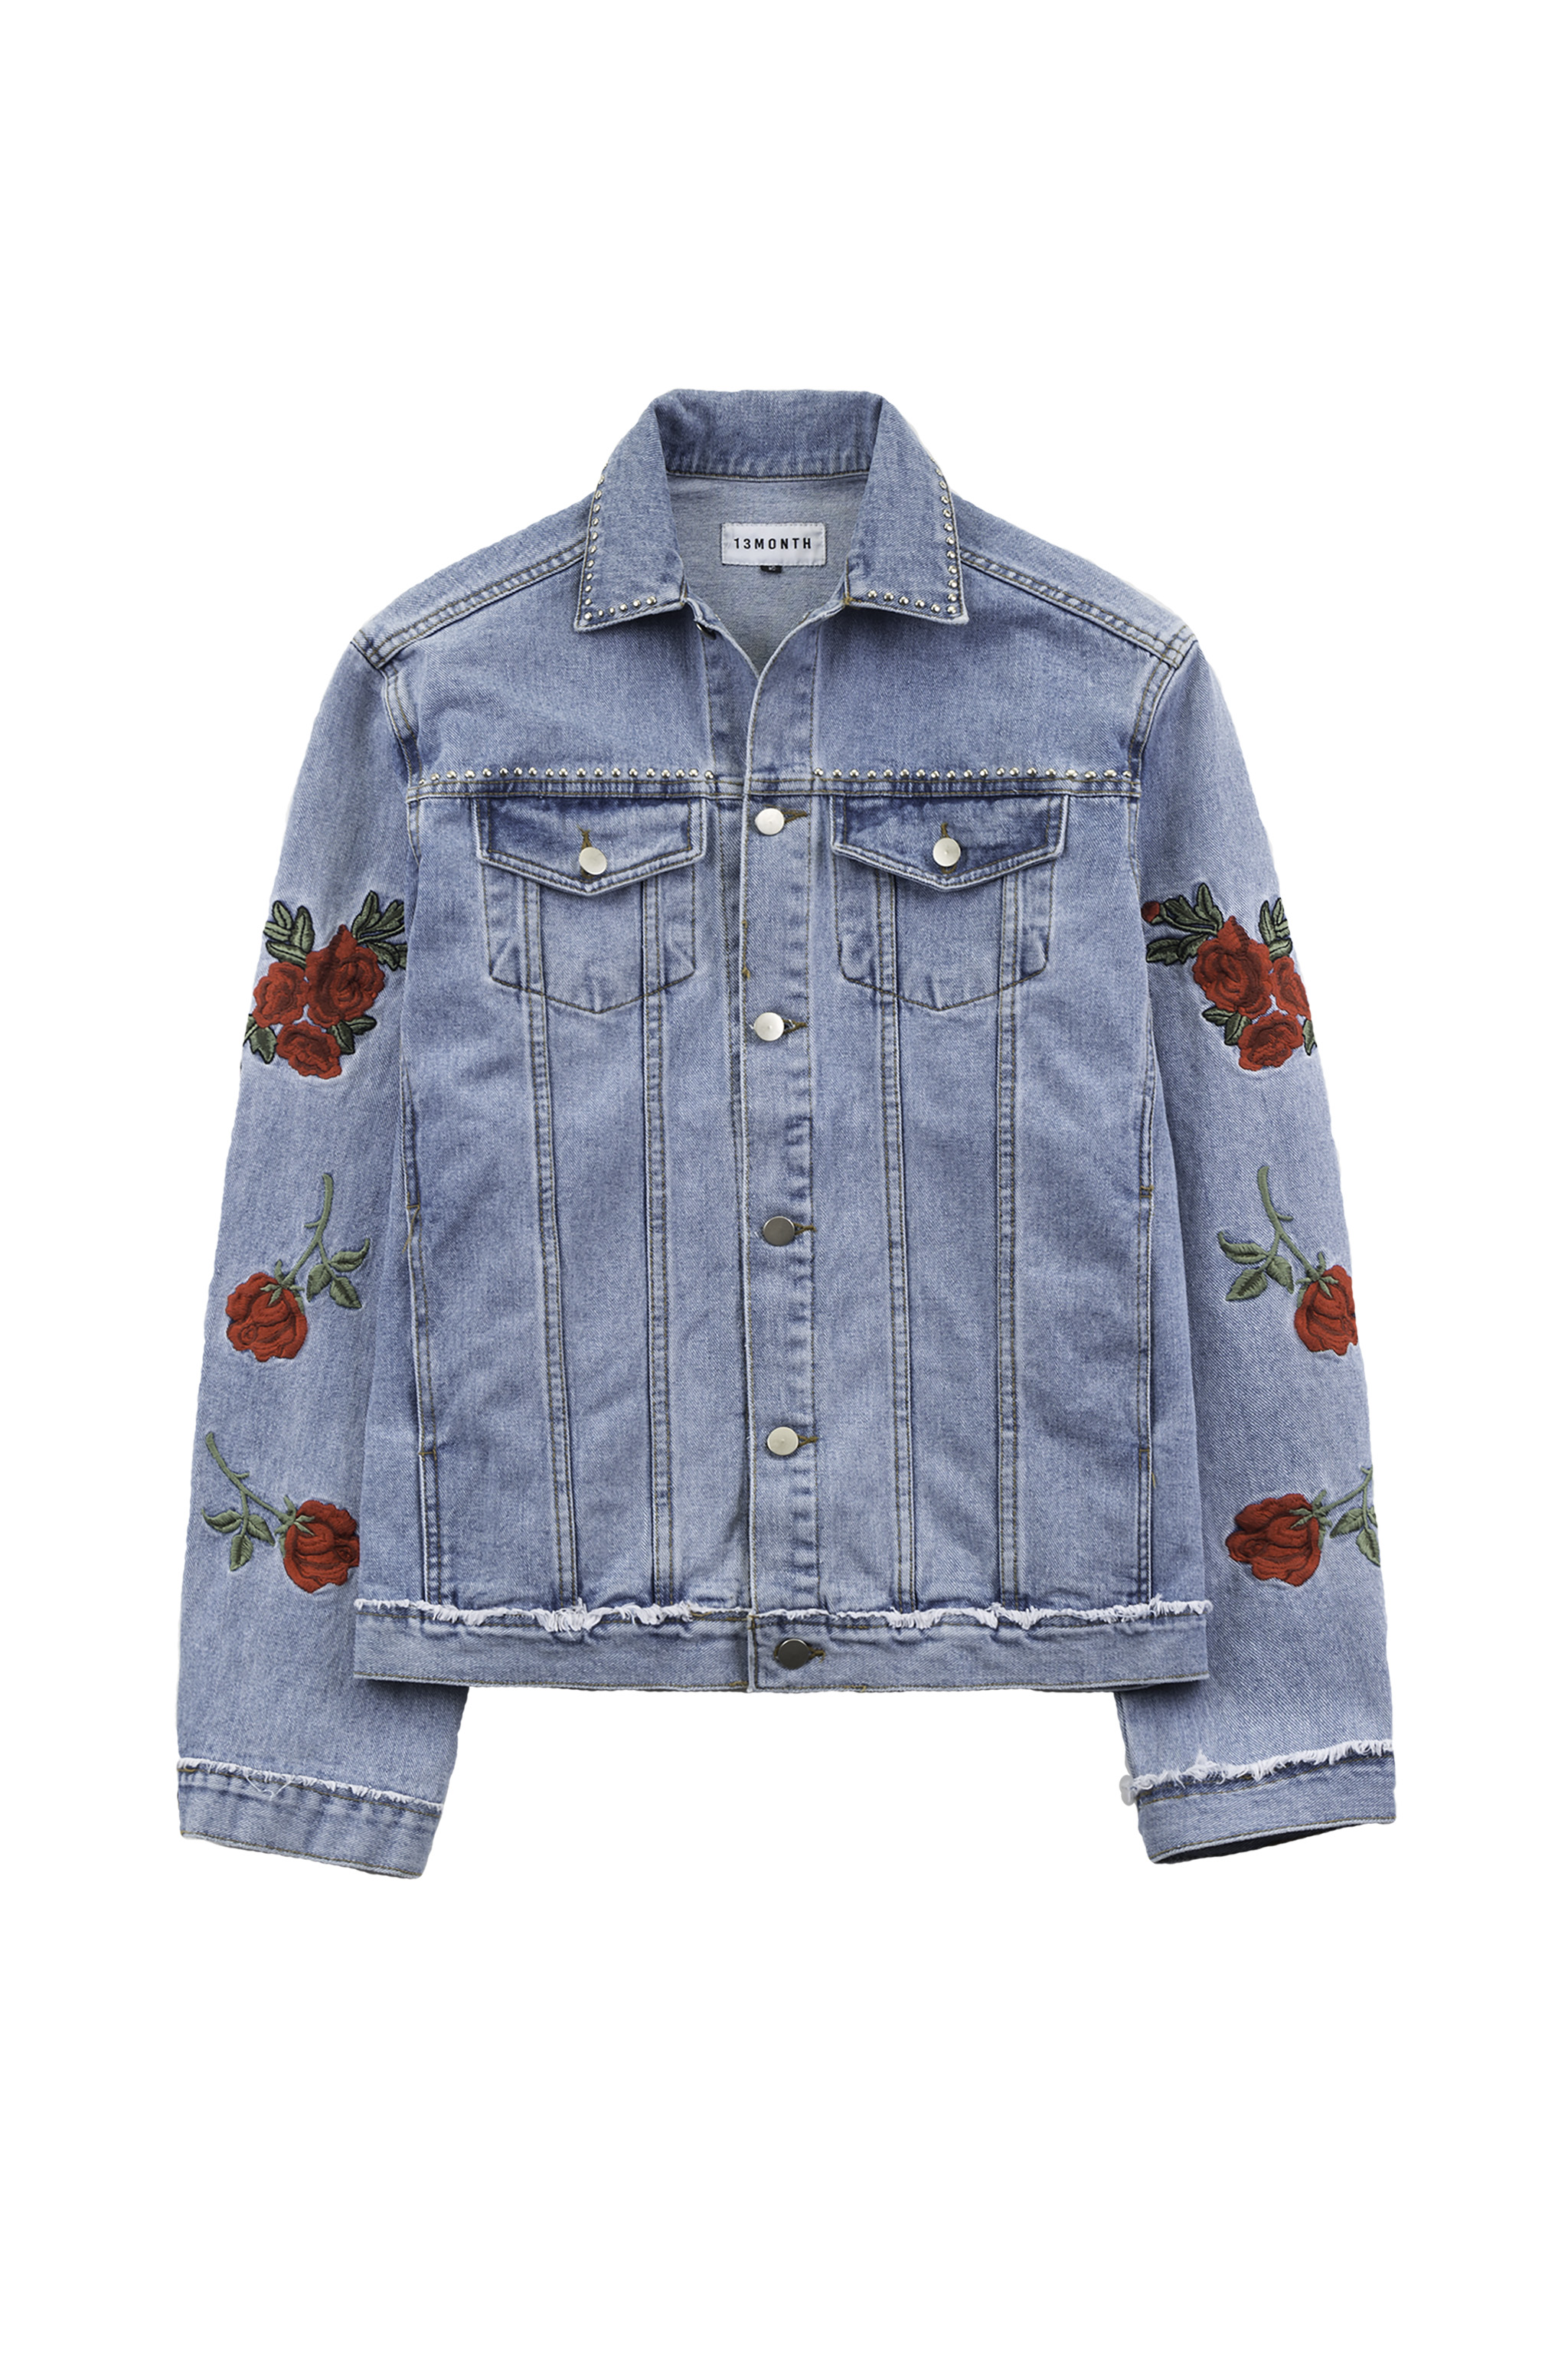 JACKET DENIM EMBROIDERED ROSE 13 FIG OVERSIZED MONTH COLLECTIVE xUzfXI